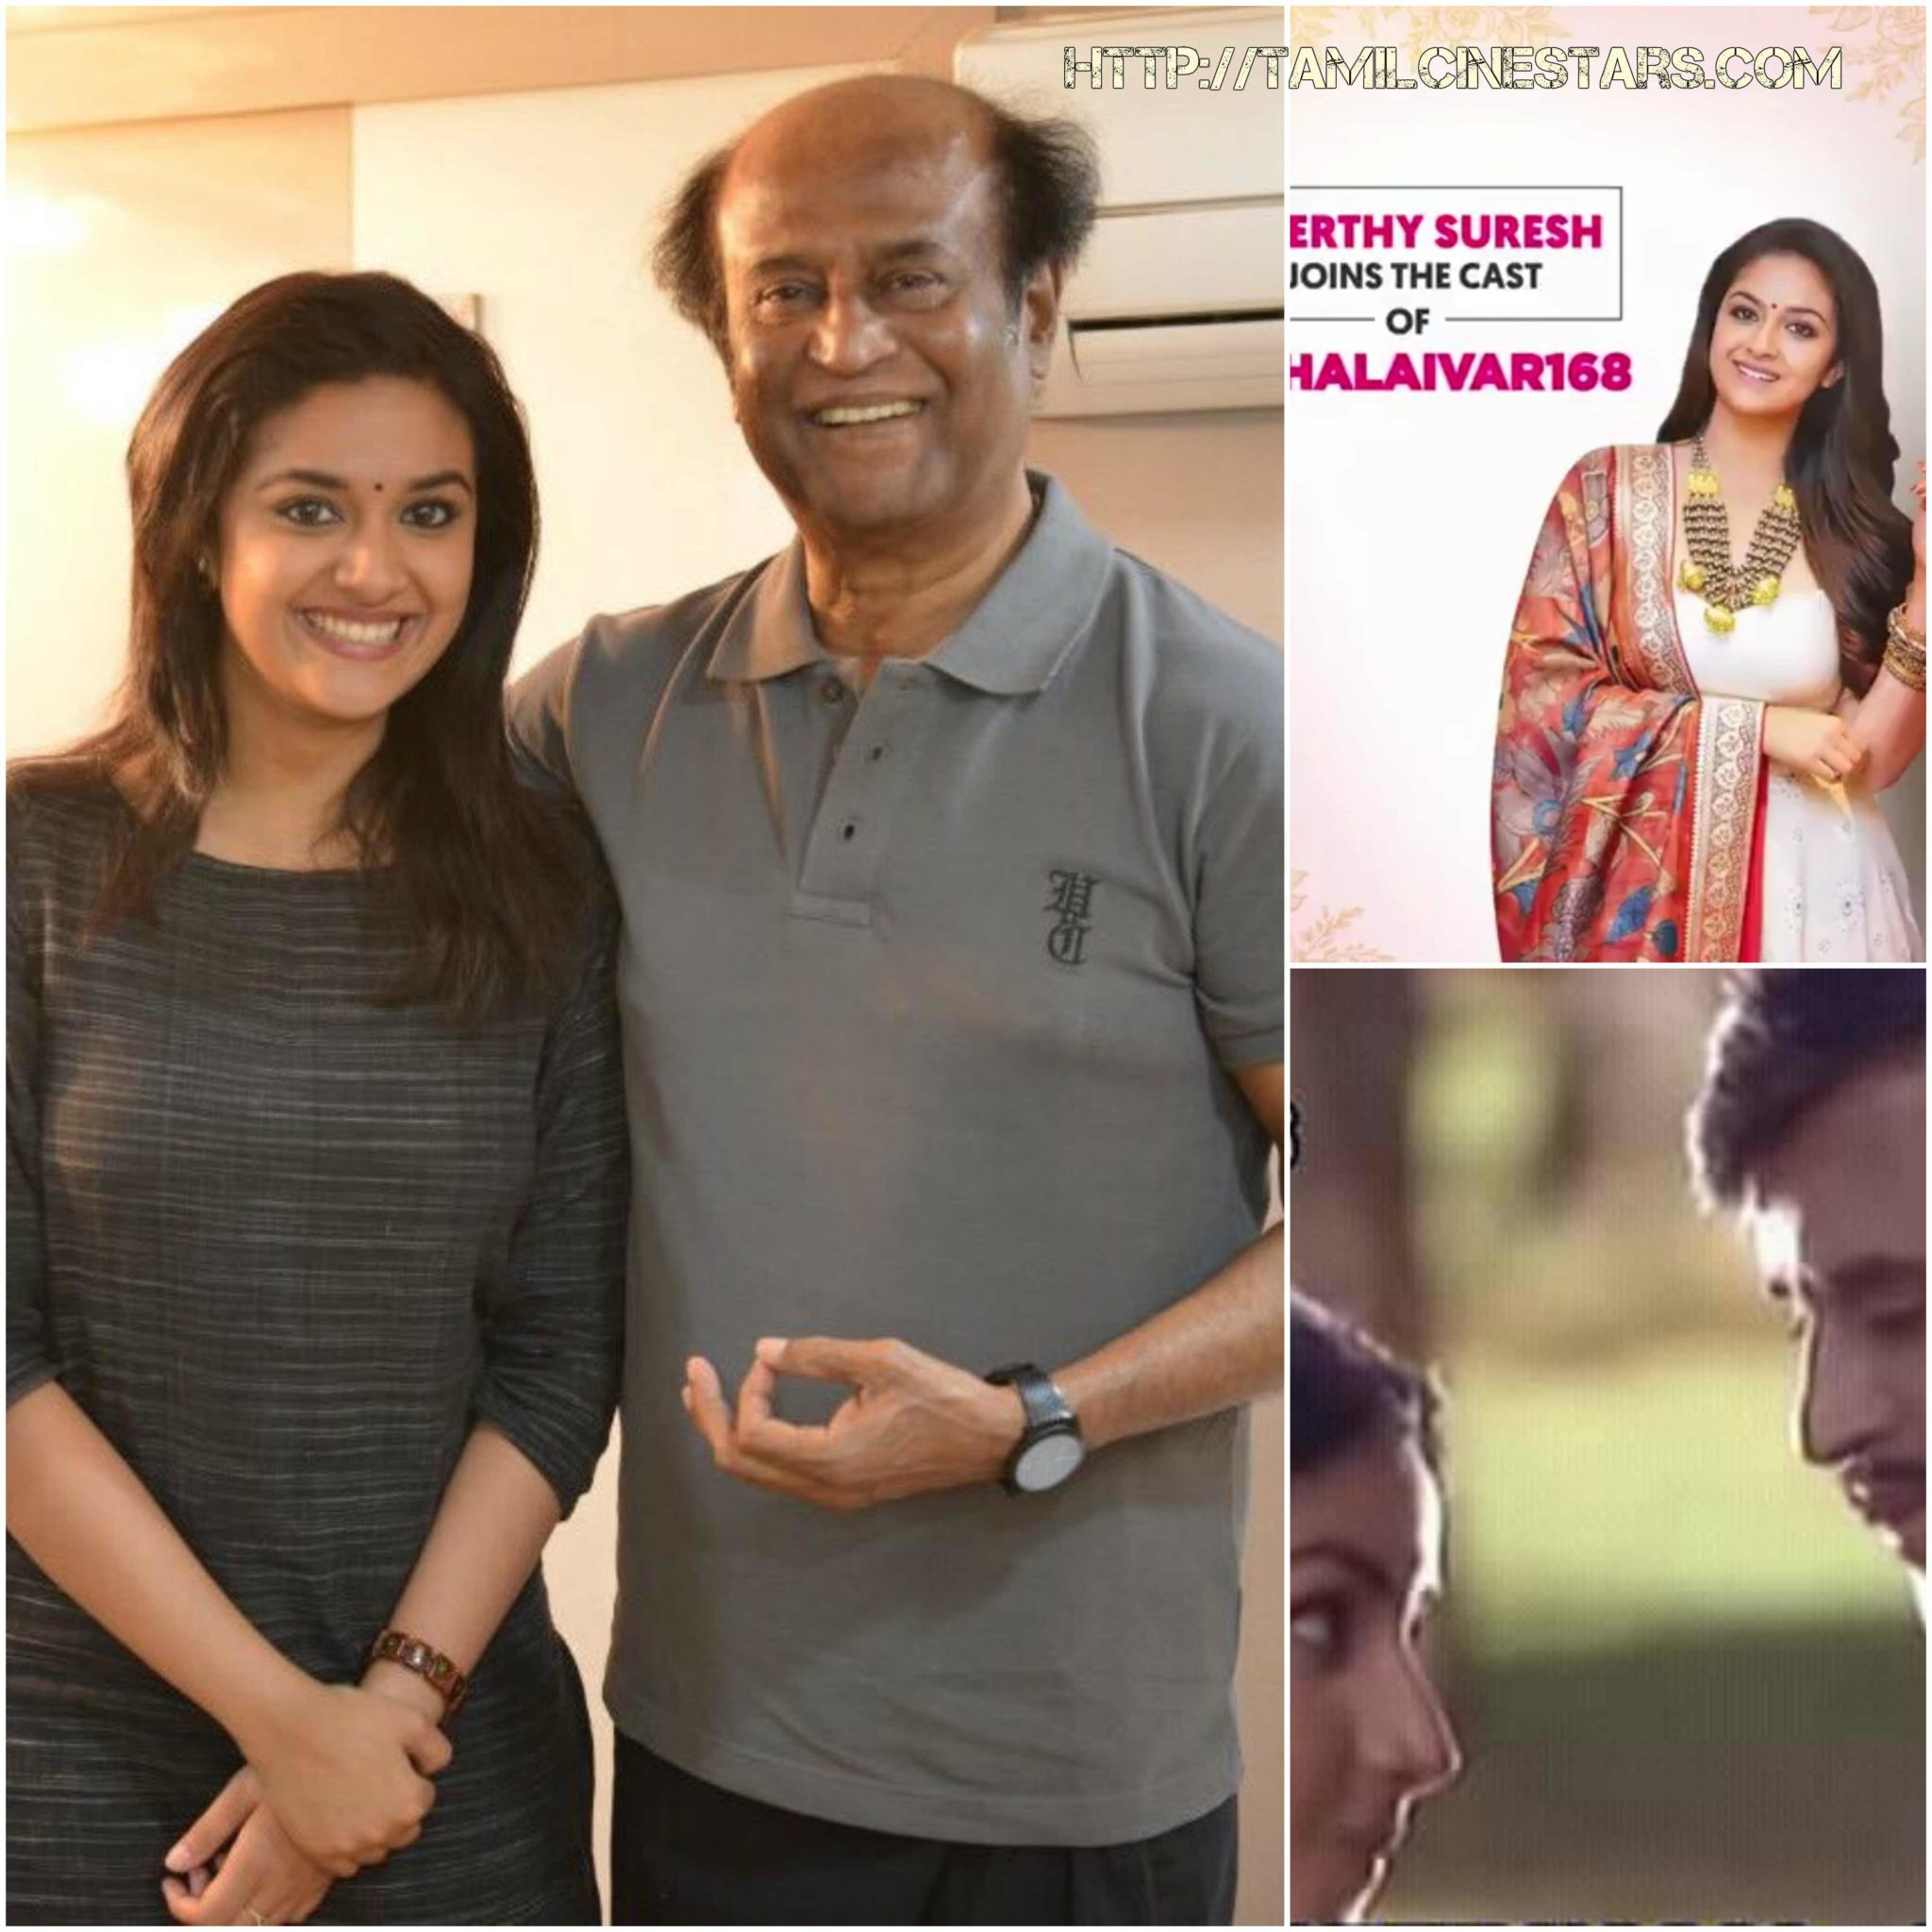 Super star Rajinikanth achieves rare record by Pairing with keerthy suresh in Thalaivar 168